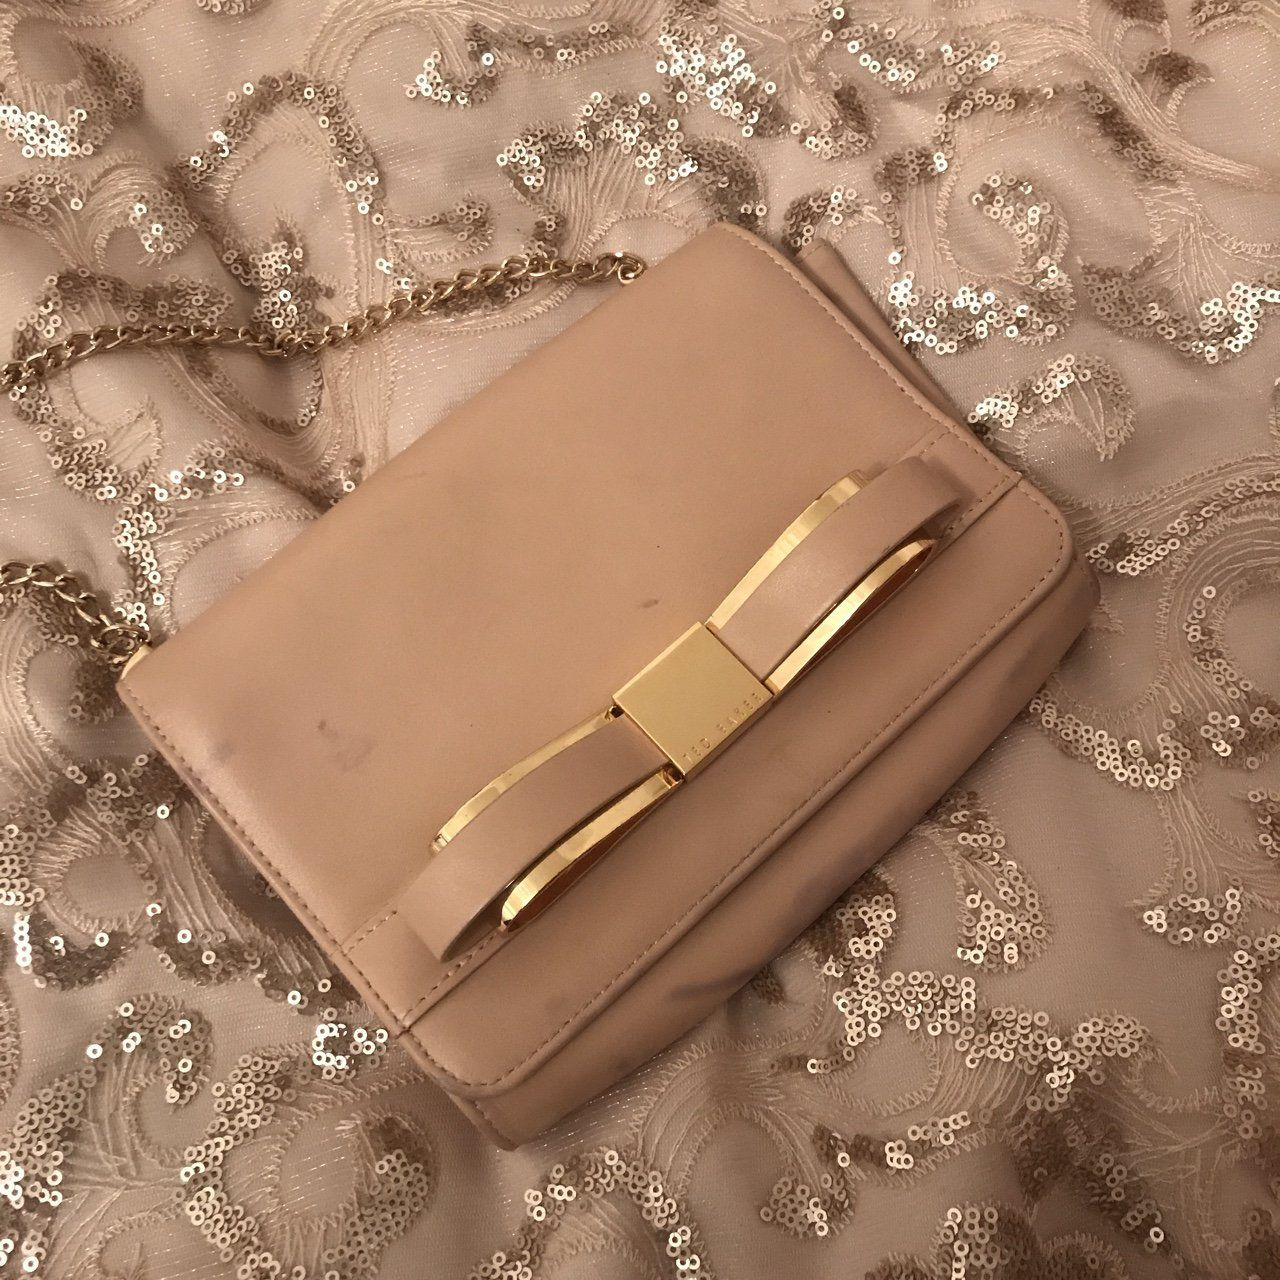 21caf56d9 Ted Baker Clutch bag Slight wear and tear - Depop